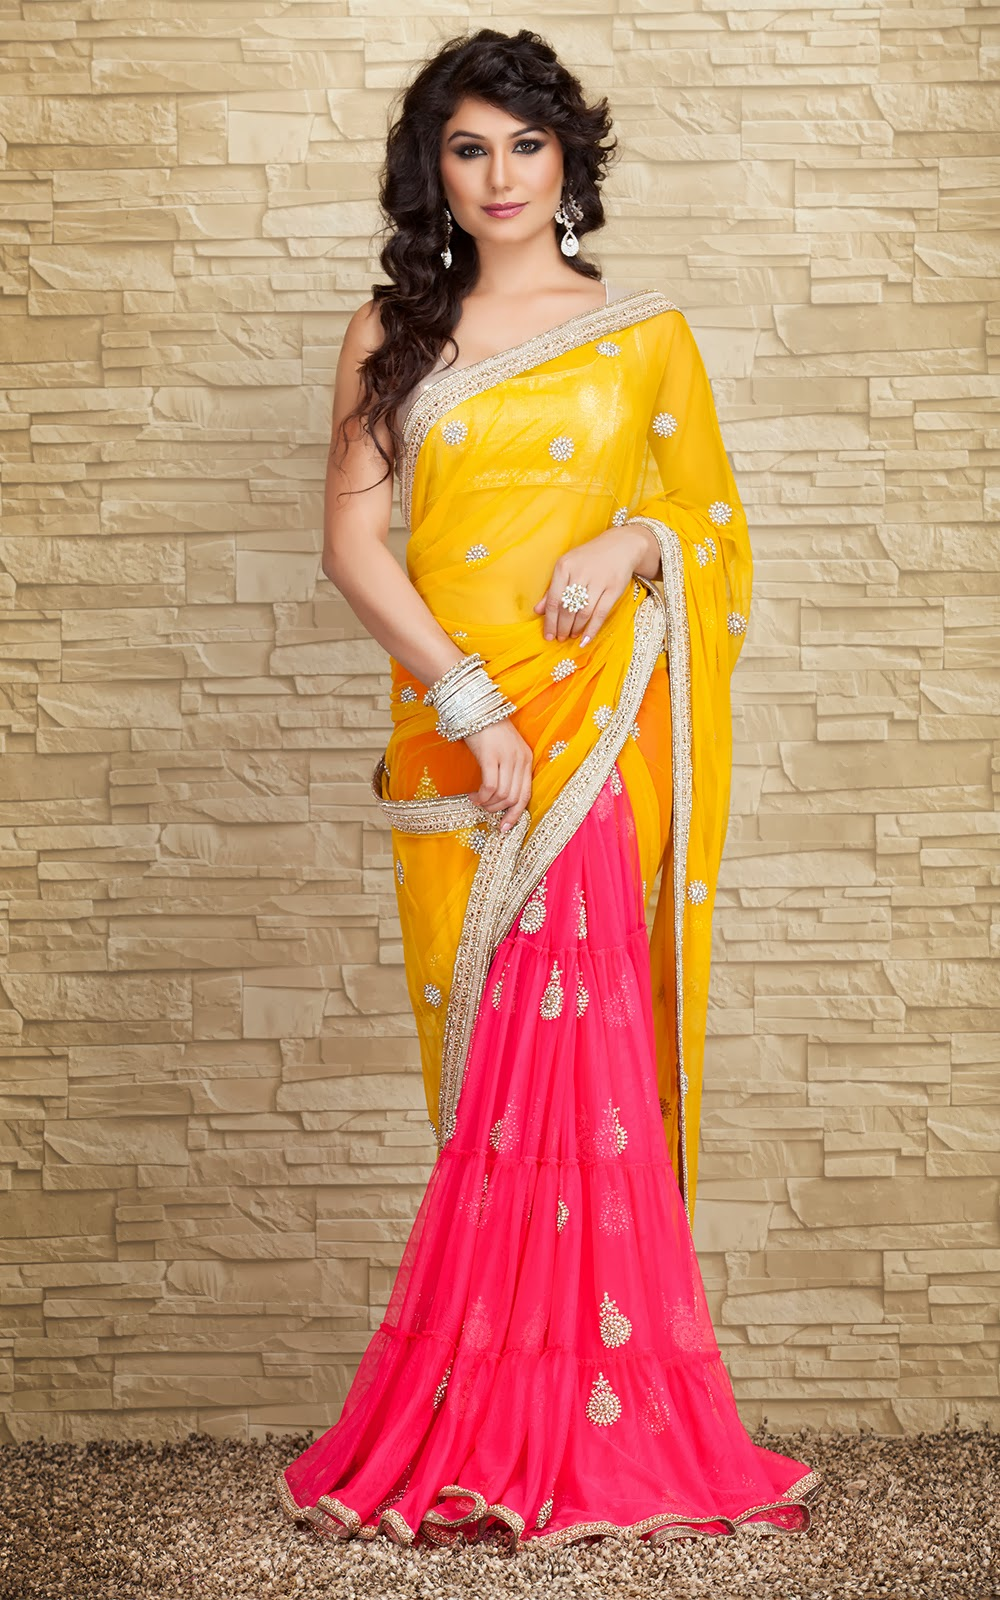 sarees A sari, saree, or shari is a female garment from the indian subcontinent that consists of a drape varying from five to nine yards (45 metres to 8 metres) in length and two to four feet (60 cm to 120 m) in breadth that is typically wrapped around the waist, with one end draped over the shoulder, baring the midriff there are various styles sari manufacture and draping, the most common being.